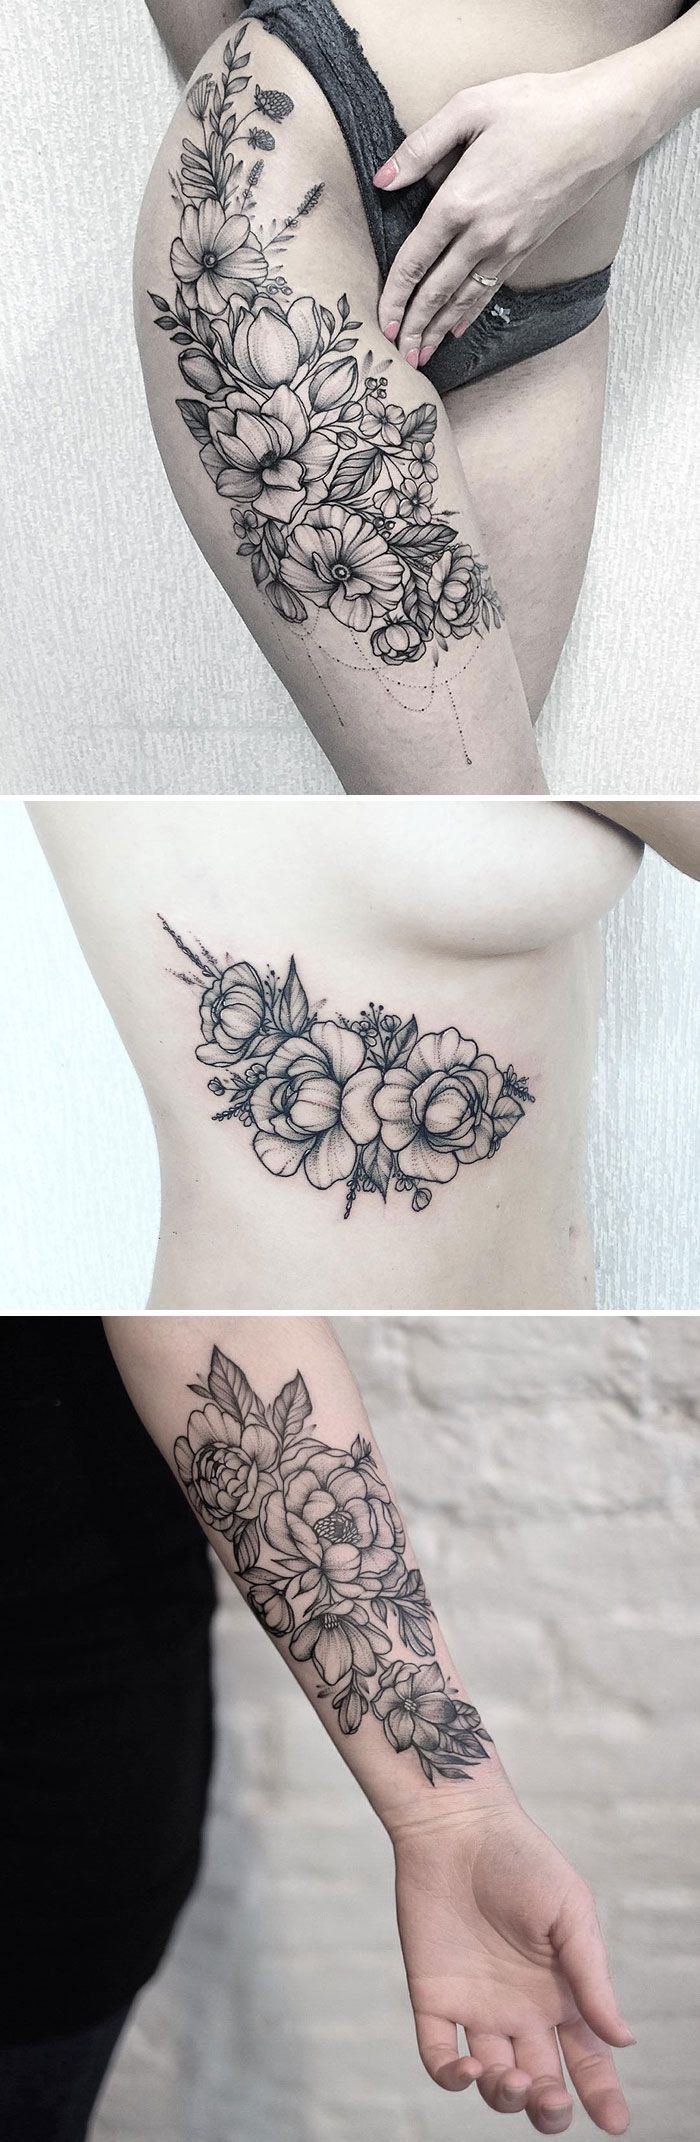 Beautifulfloraltattoosg pixels tattoo